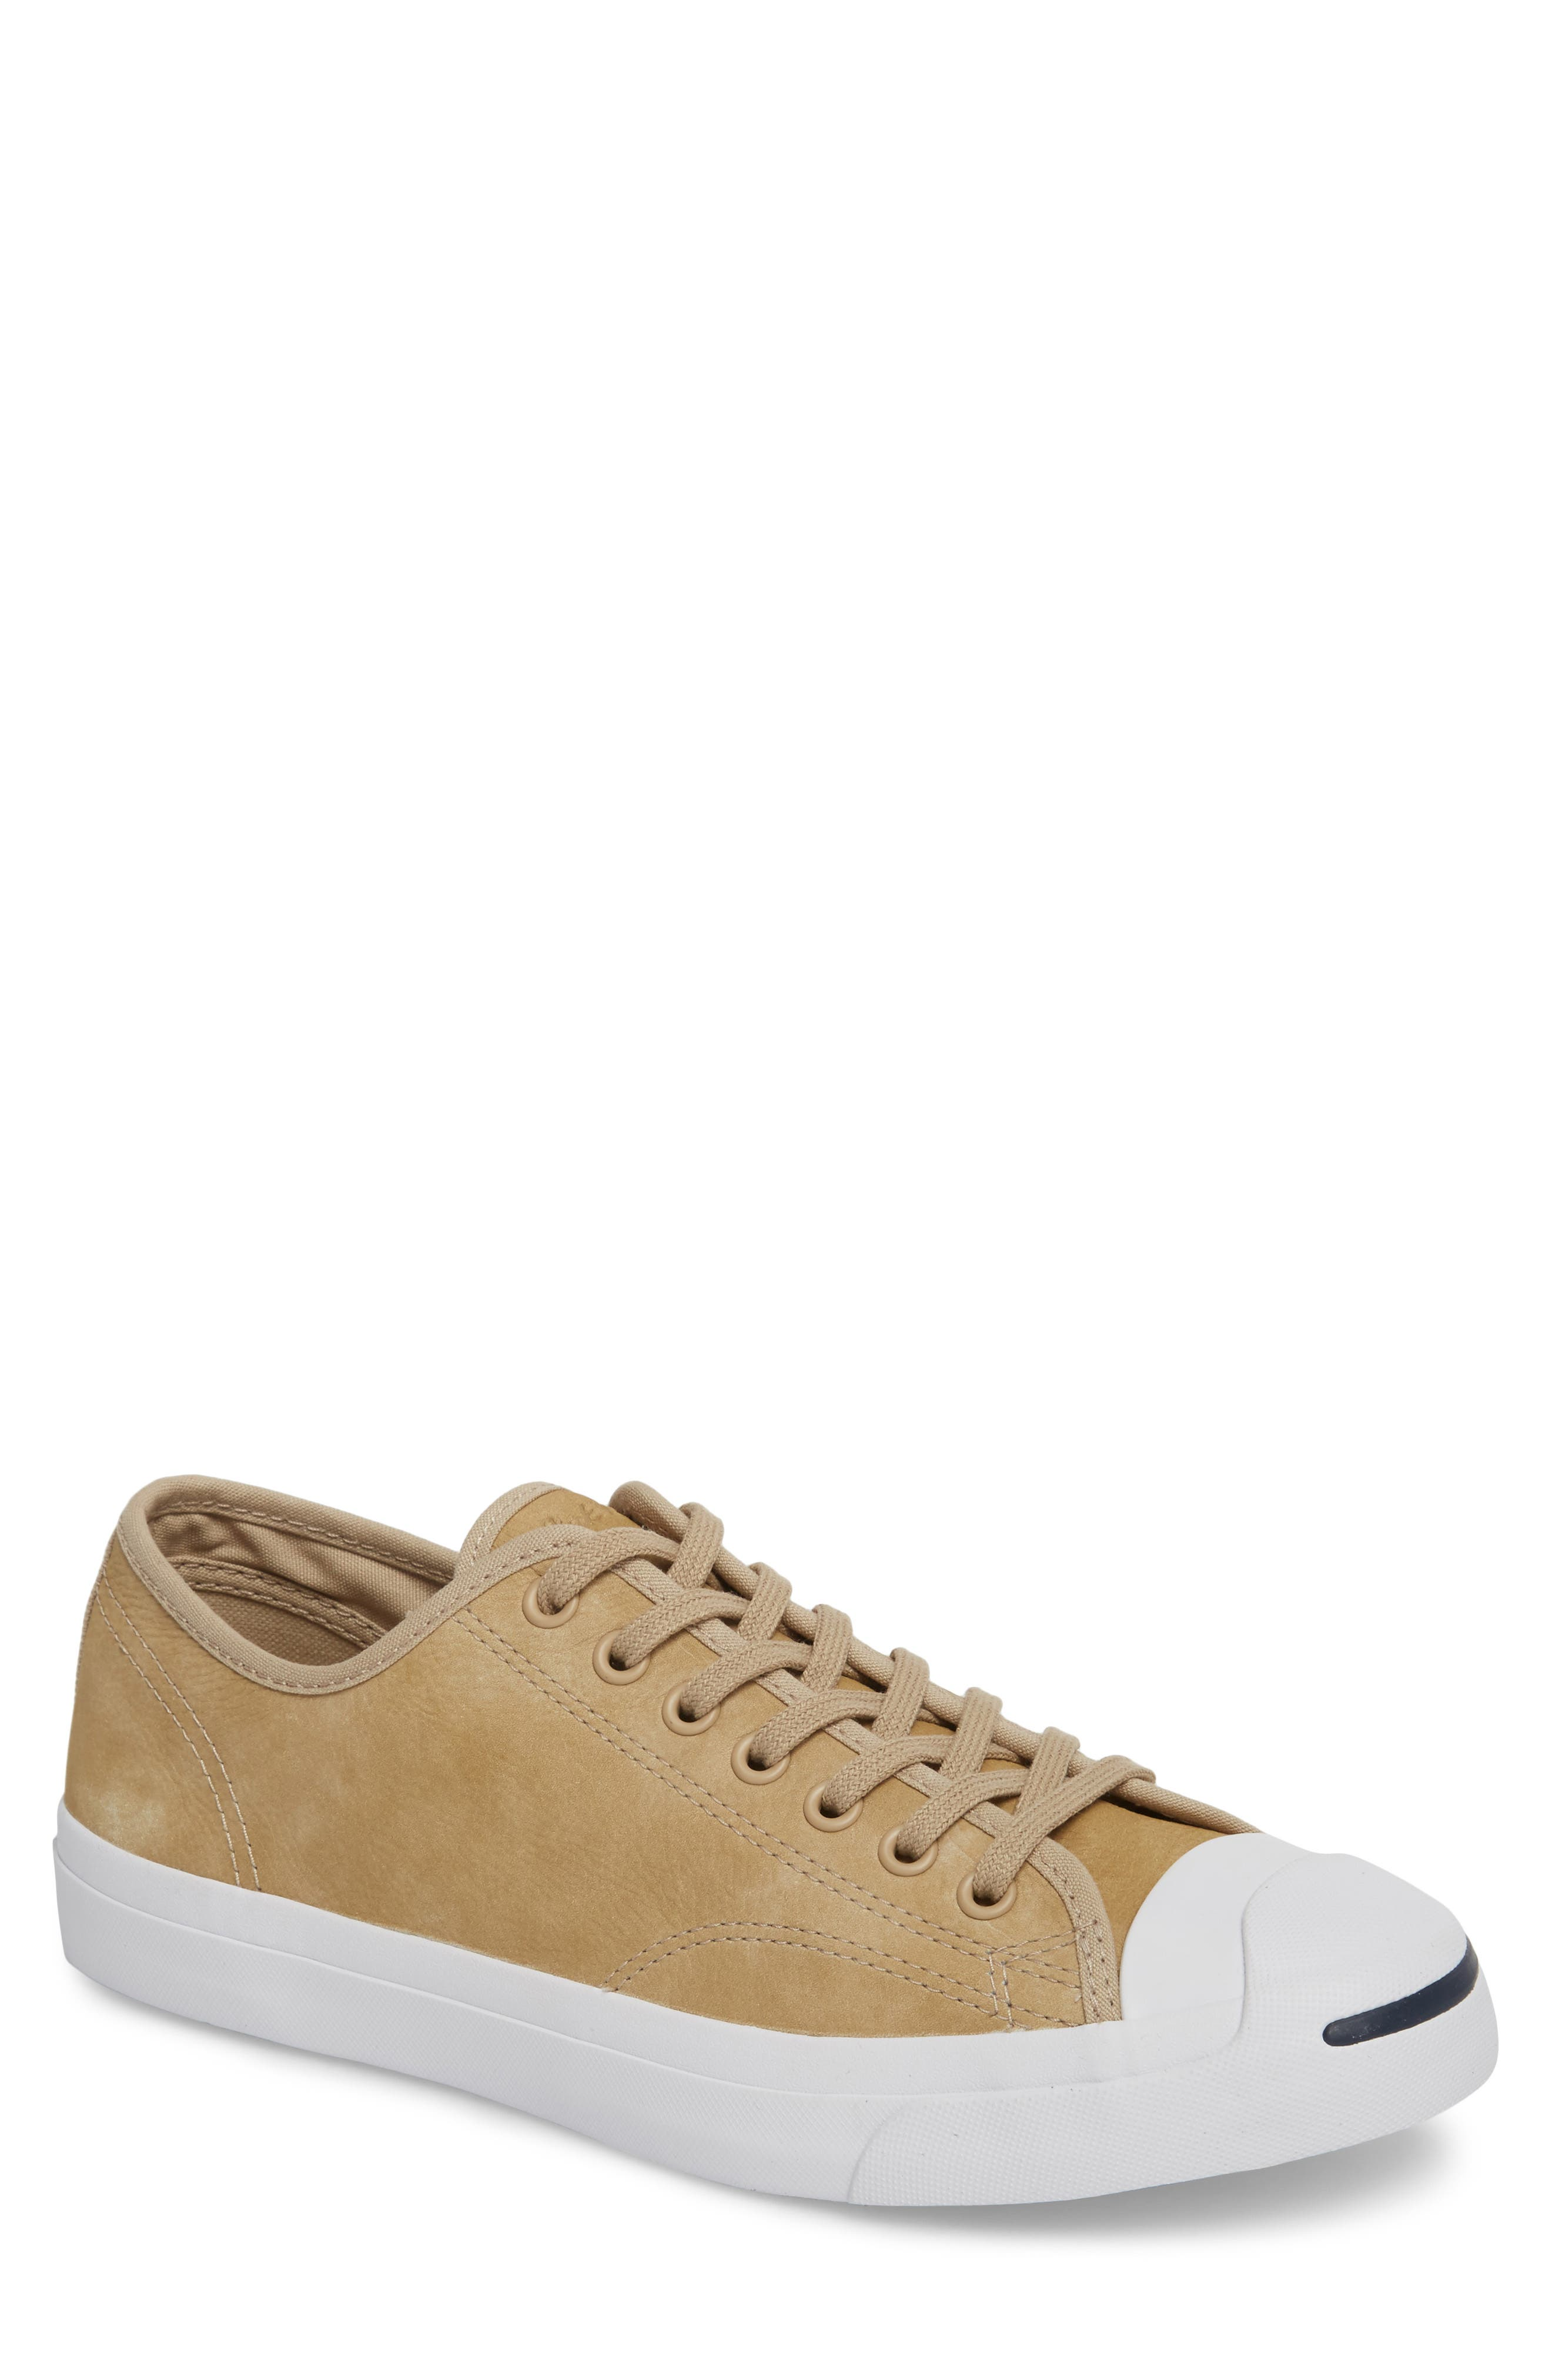 'Jack Purcell - Jack' Sneaker,                         Main,                         color, 270